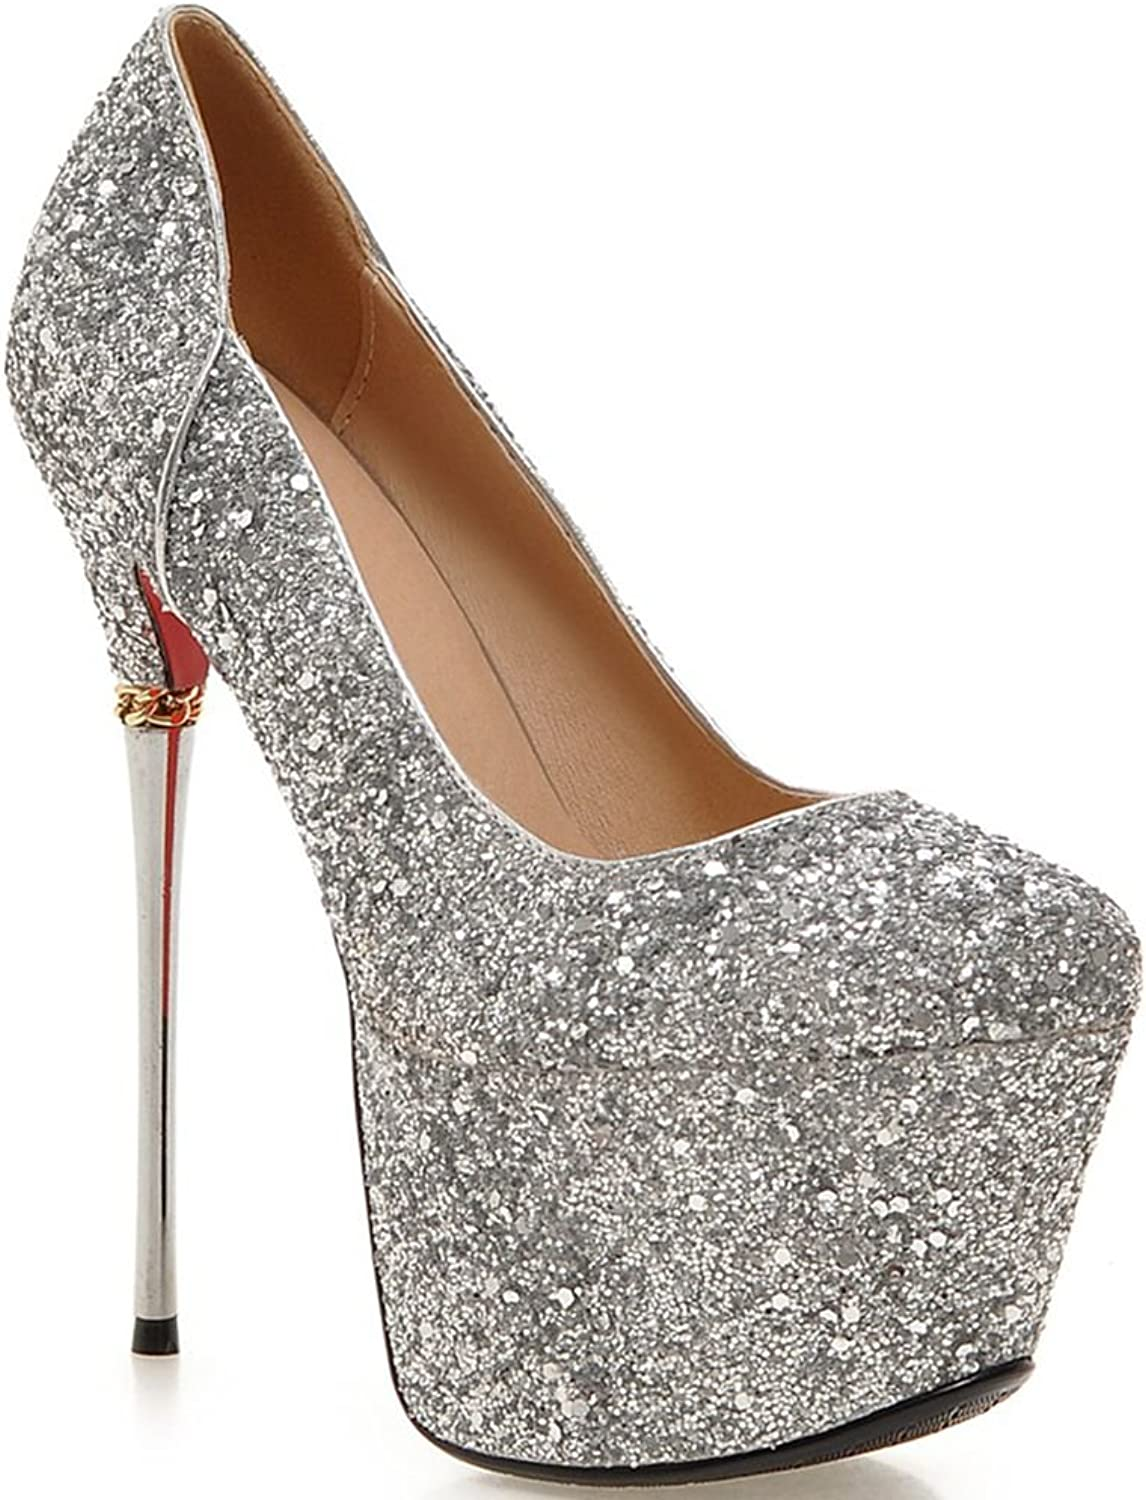 DoraTasia Sexy Ultra High Heeled Shinning Glitter Upper Thick Platform Ankle Wrap Women Pumps shoes